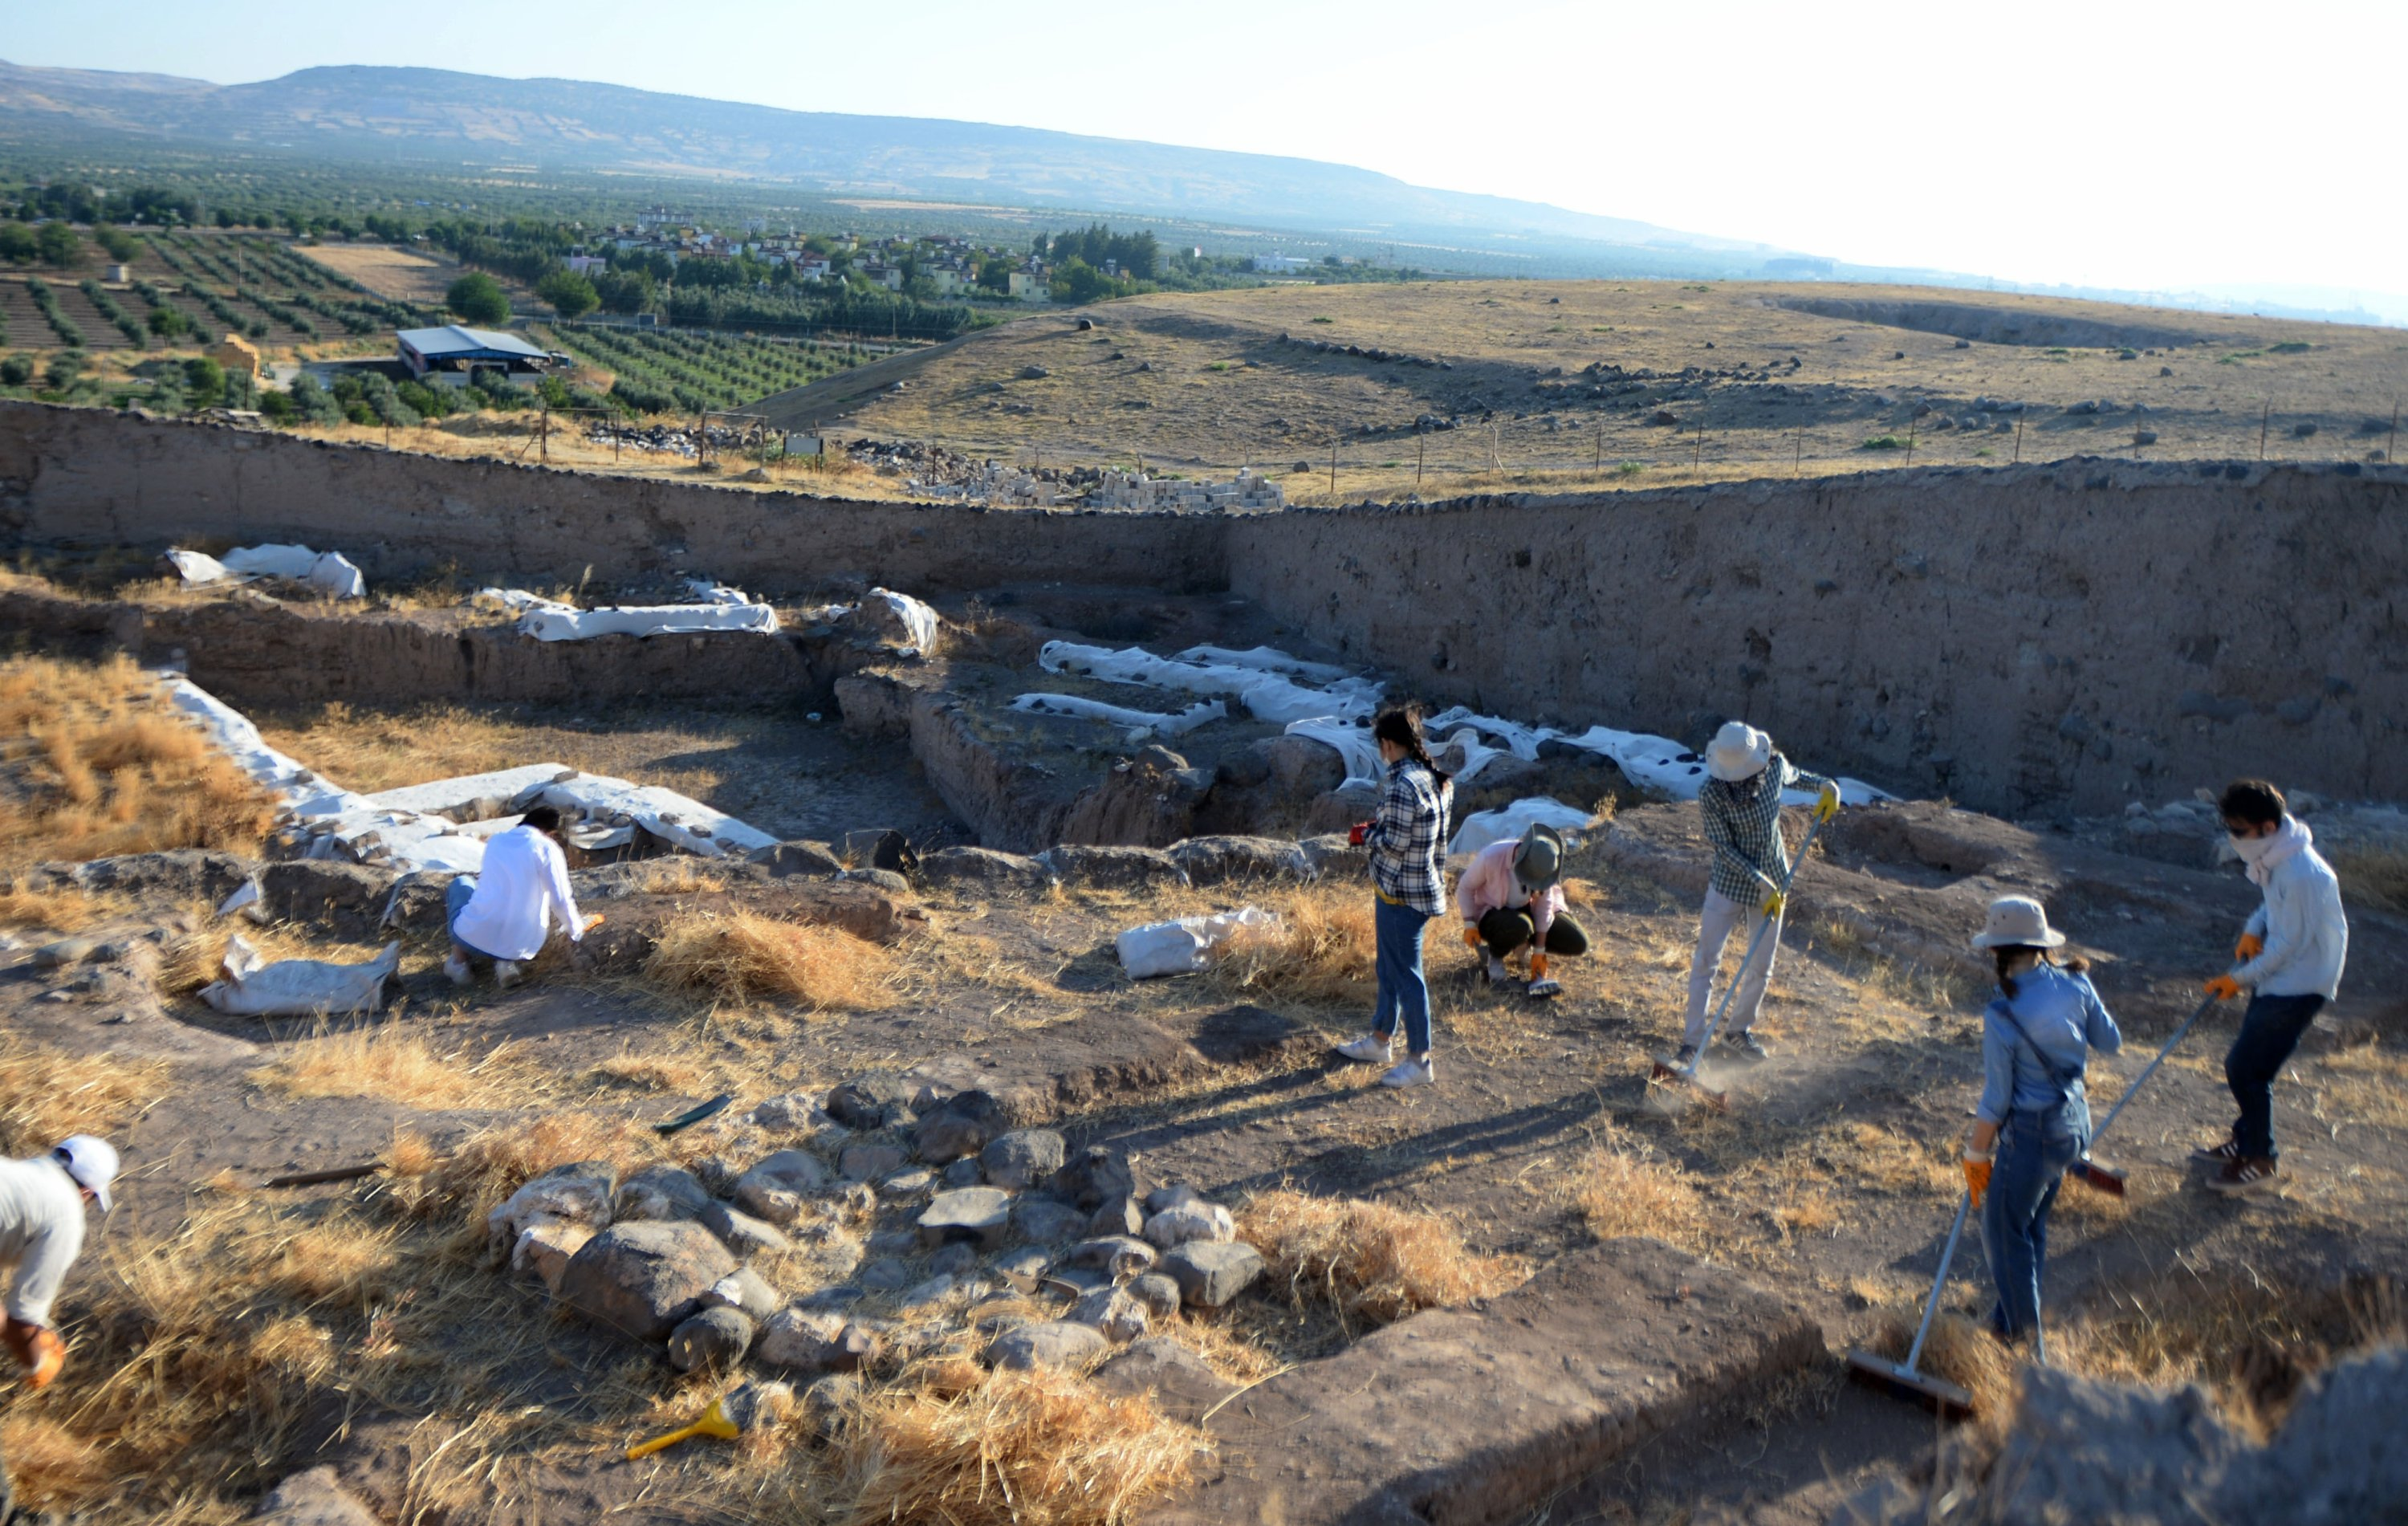 Members of the excavation team are seen while working at the site, Kilis, Turkey, July 21, 2020. (AA PHOTO)